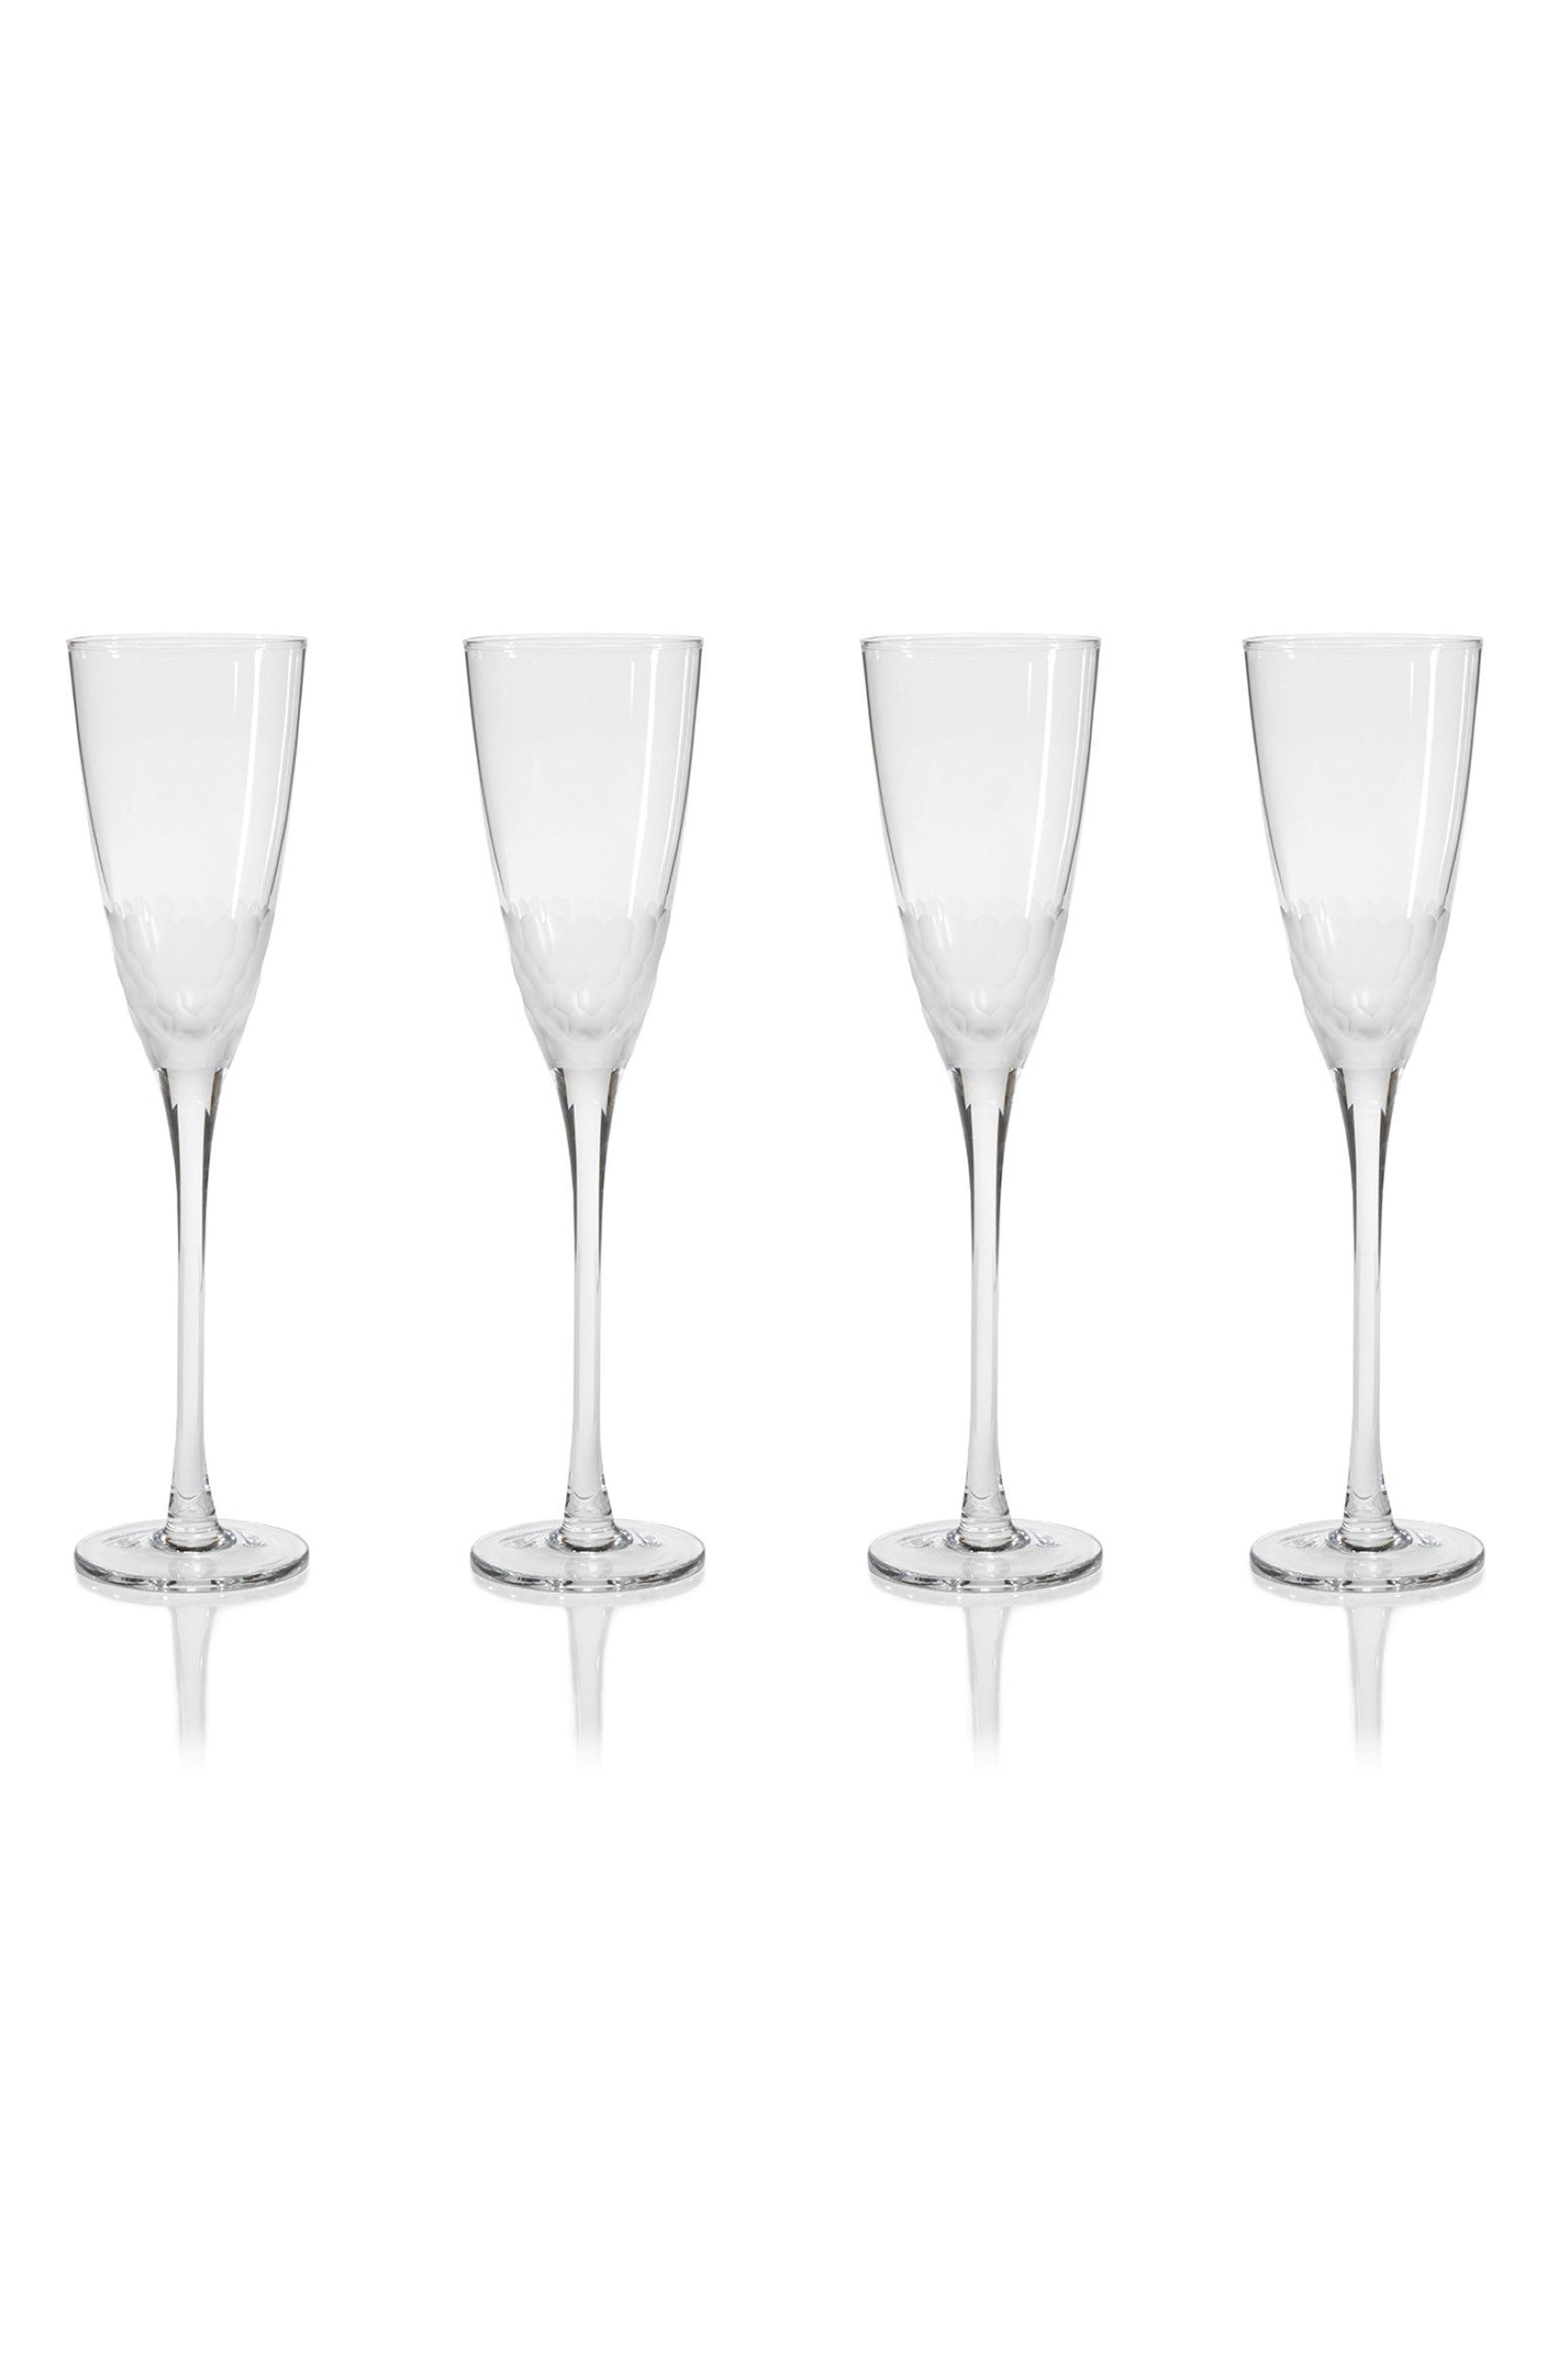 Main Image - Zodax Vitorrio Set of 4 Champagne Flutes